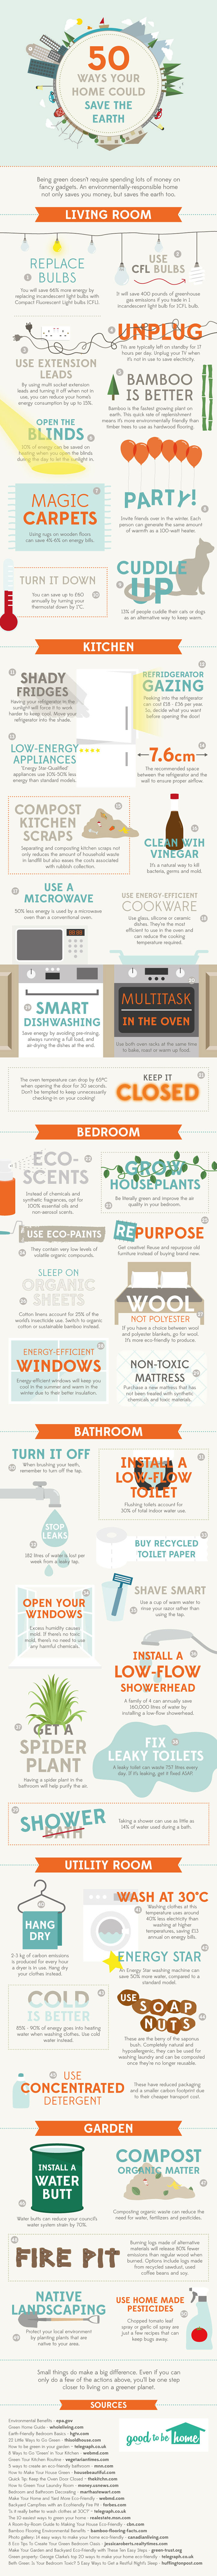 Infographic: 50 Ways your Home can Save the Earth #infographic